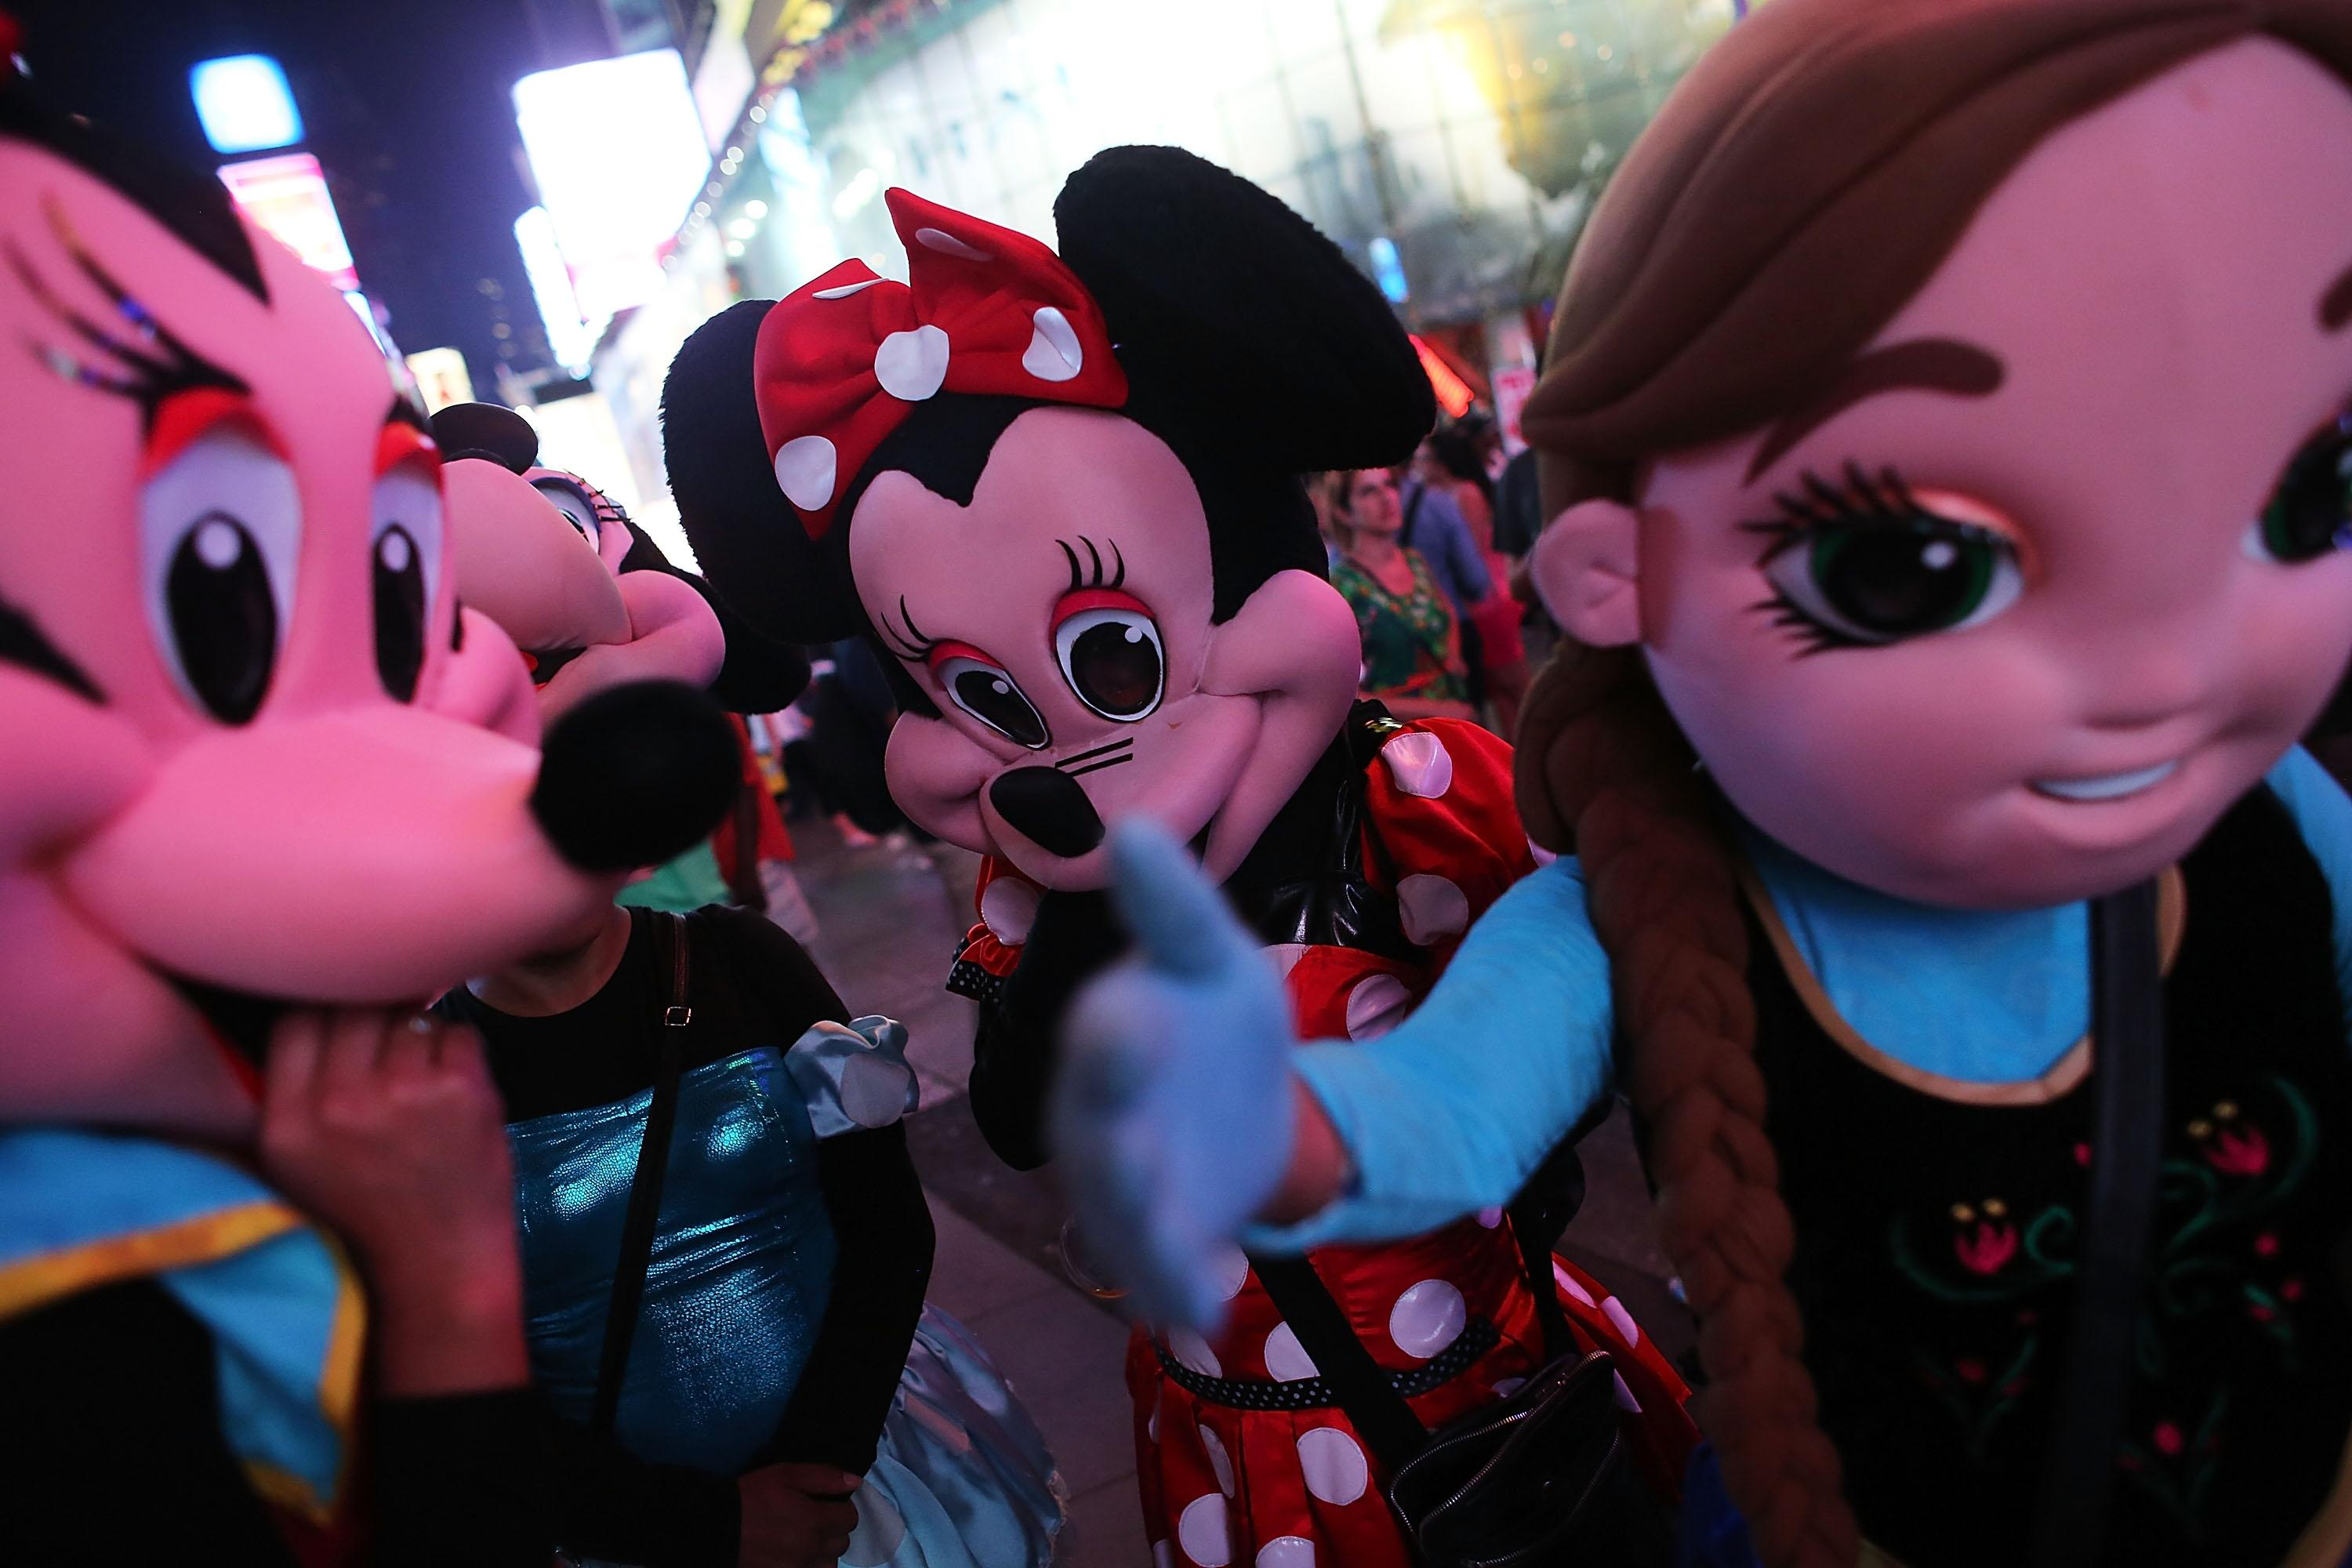 NYPD to Disney: Help get your mouse out of our house